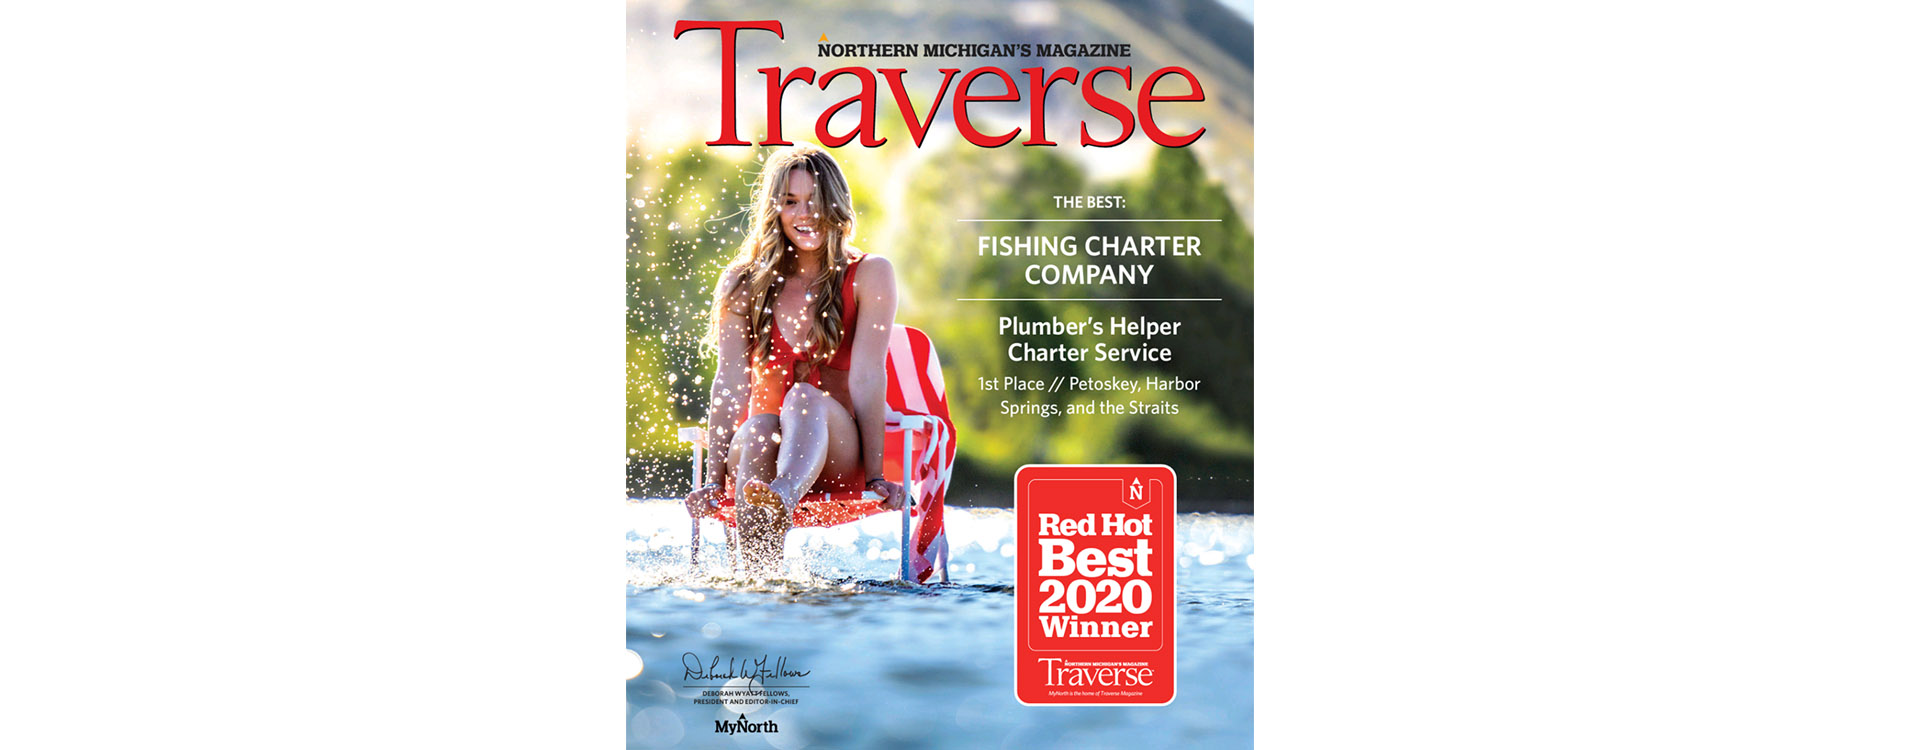 Traverse Magazine Red Hot Best First Place Northern Michigan